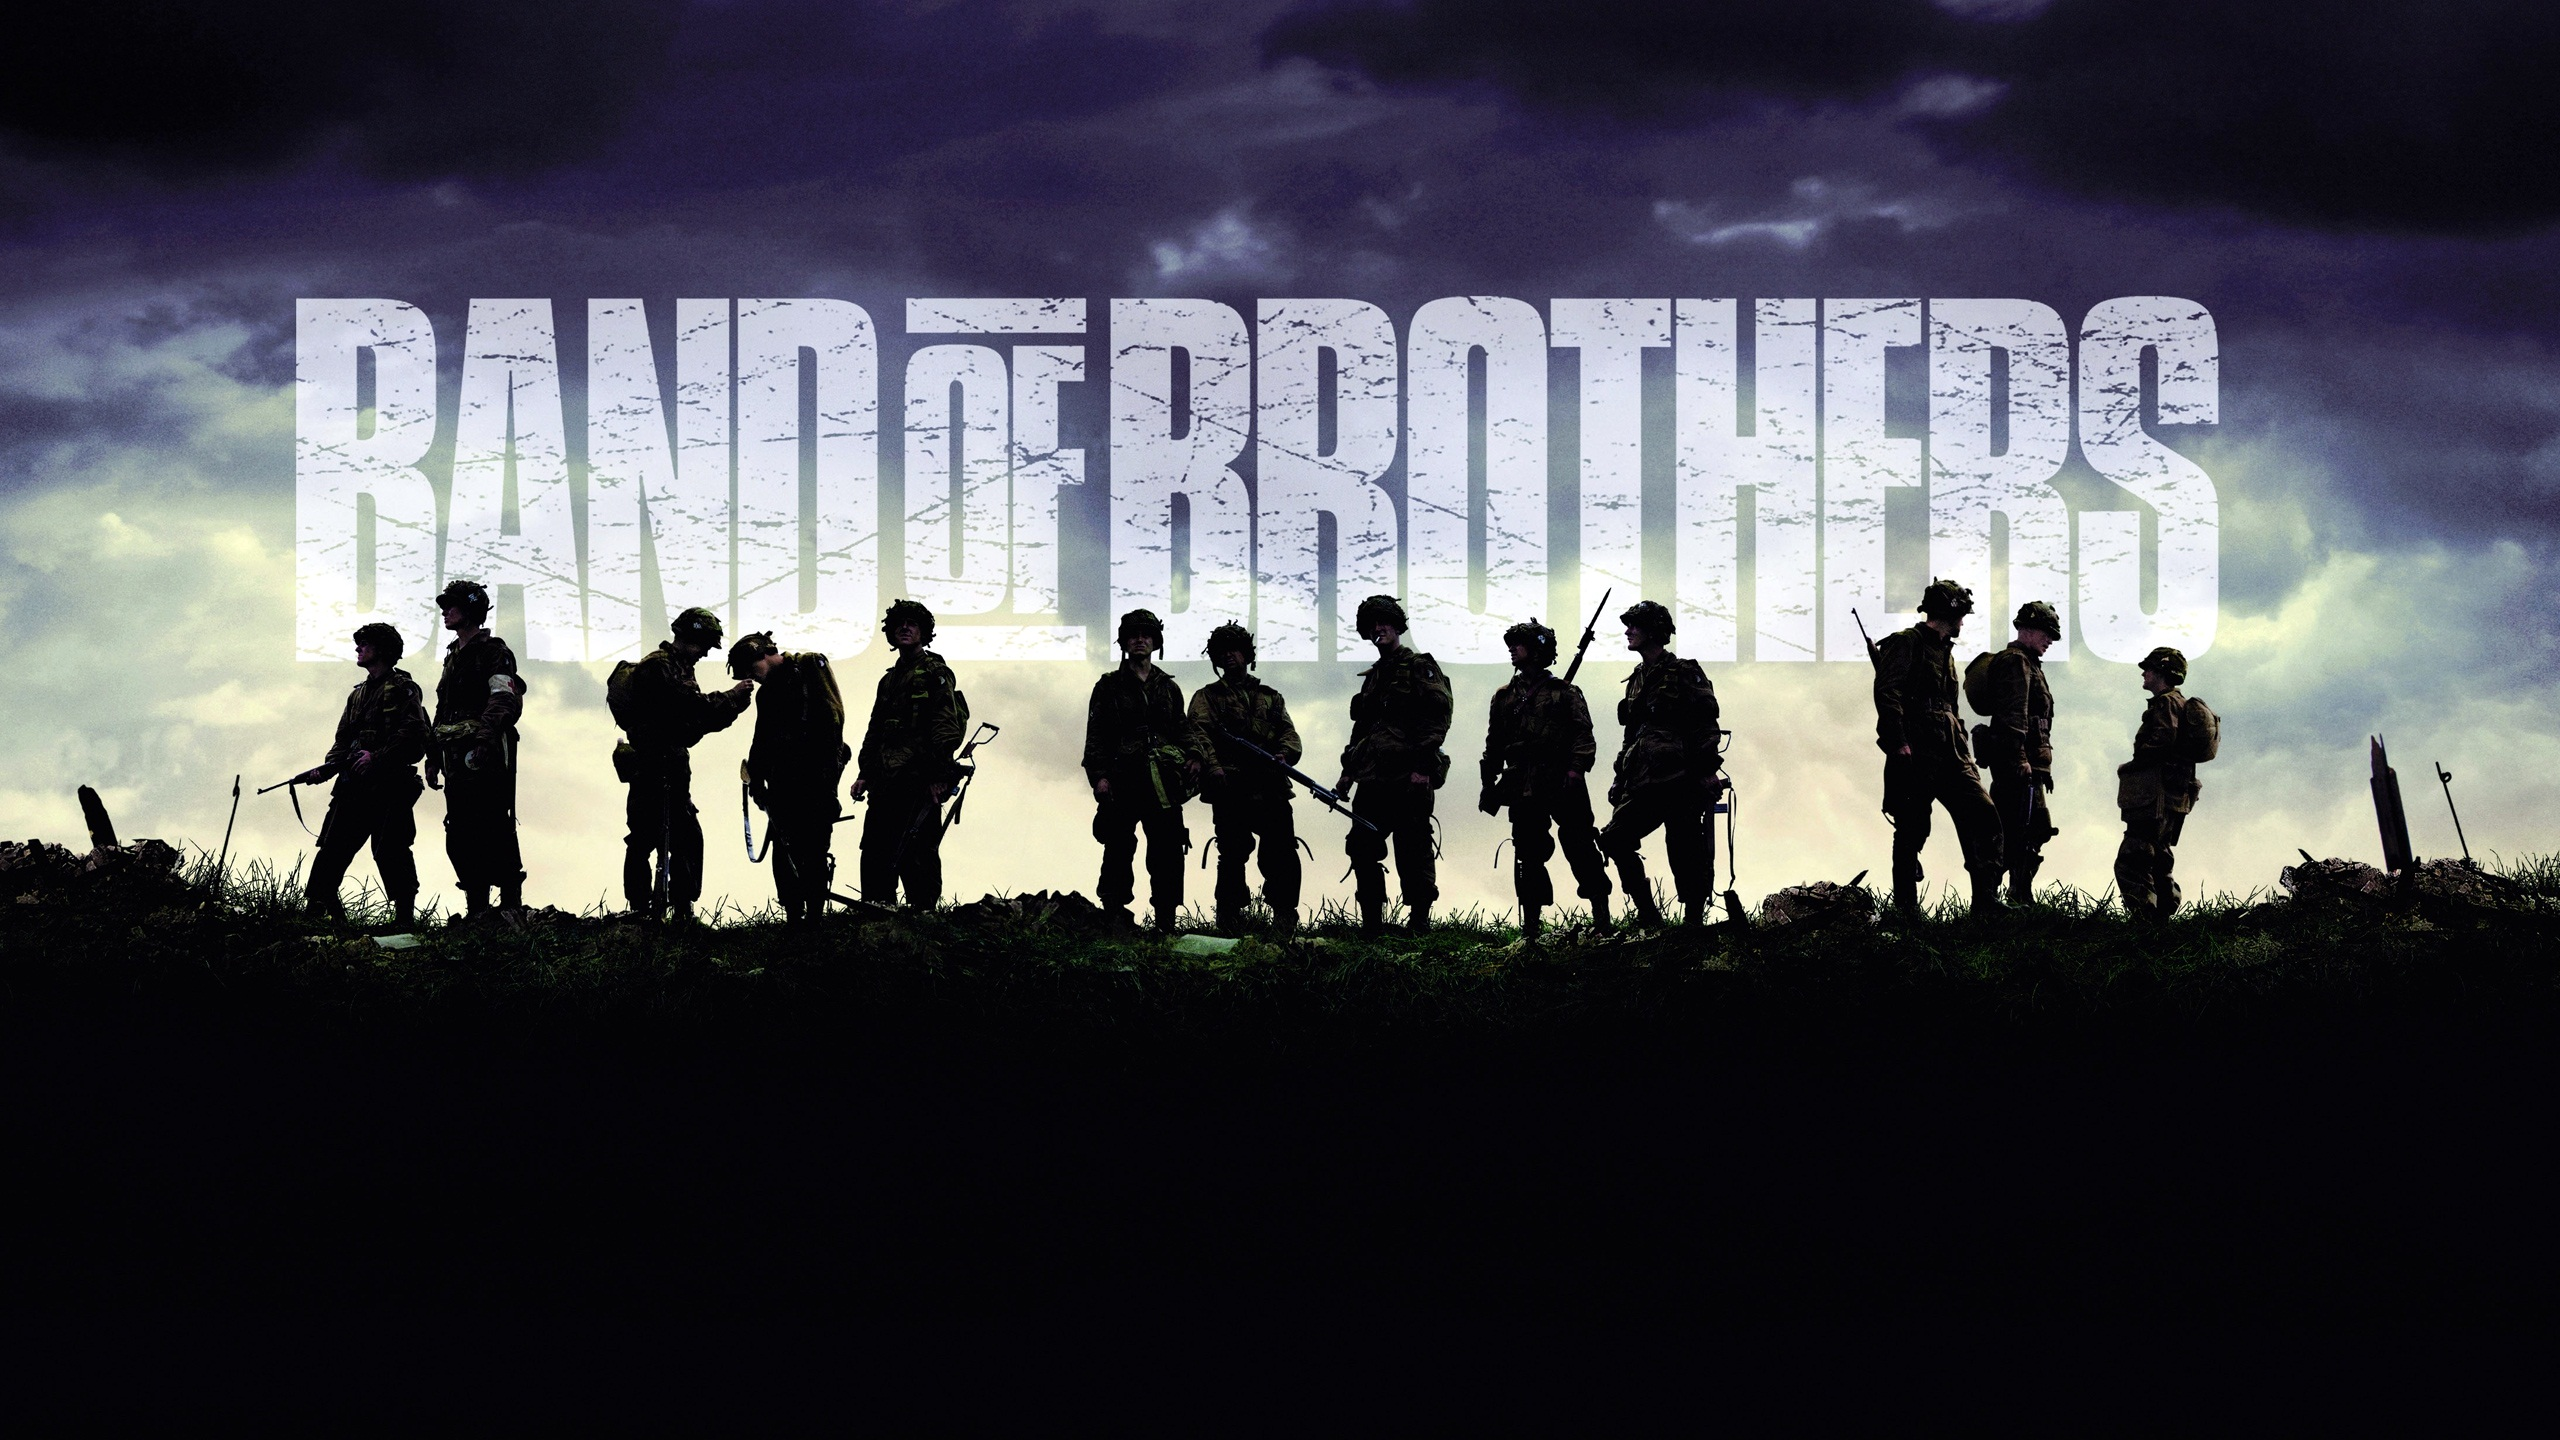 band of brothers wallpaper 32837